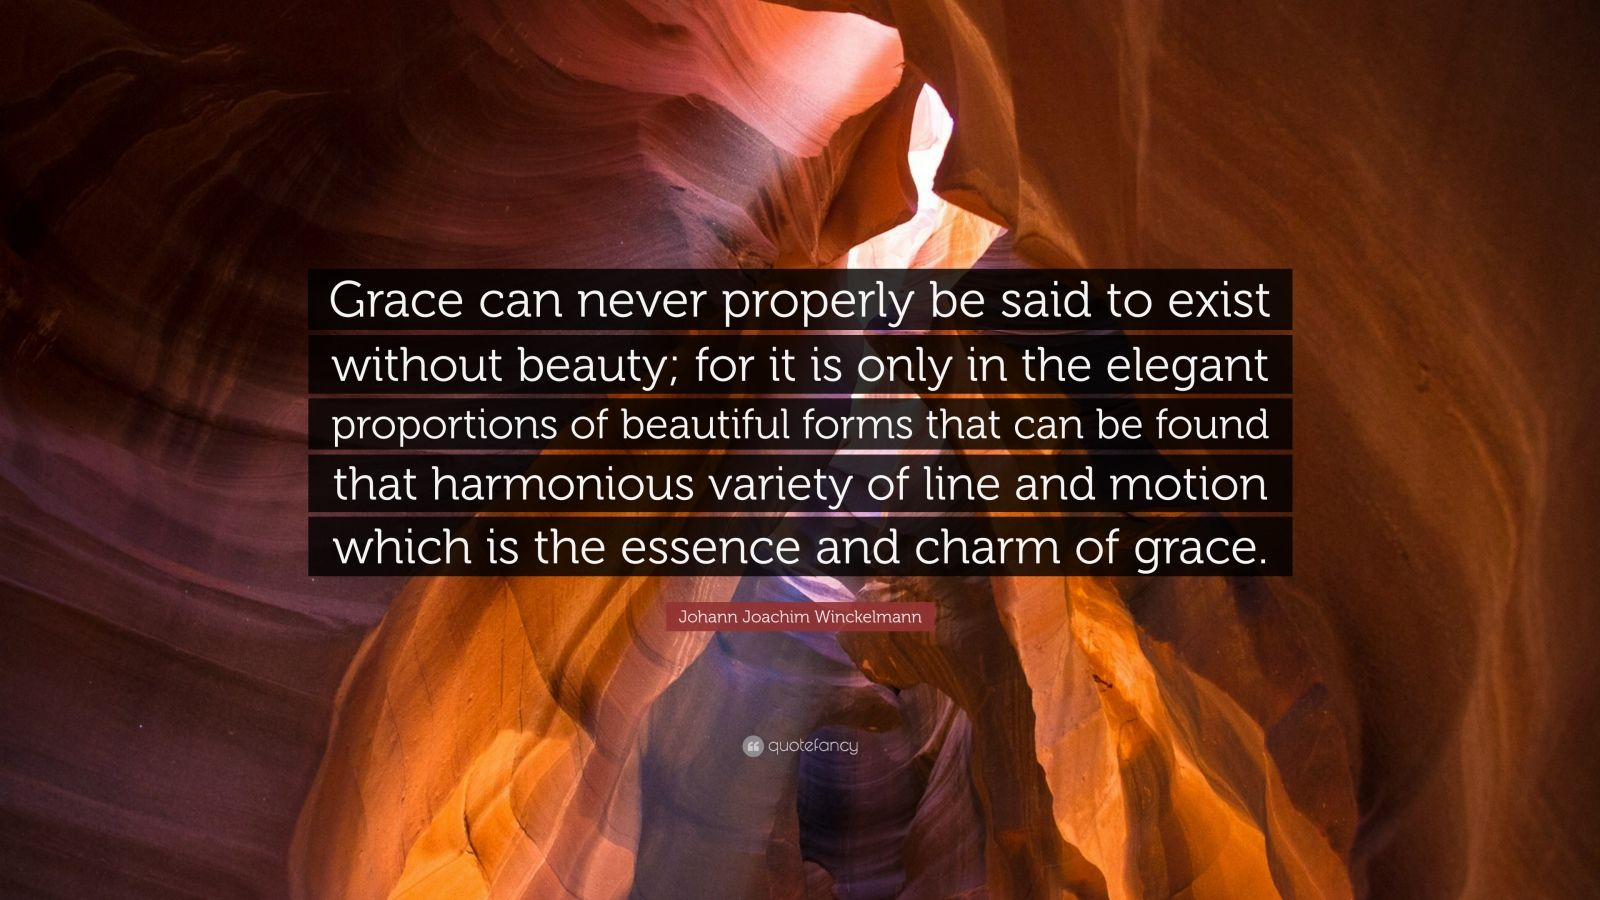 """Johann Joachim Winckelmann Quote: """"Grace can never properly be said to exist without beauty; for it is only in the elegant proportions of beautiful forms that can be found that harmonious variety of line and motion which is the essence and charm of grace."""""""